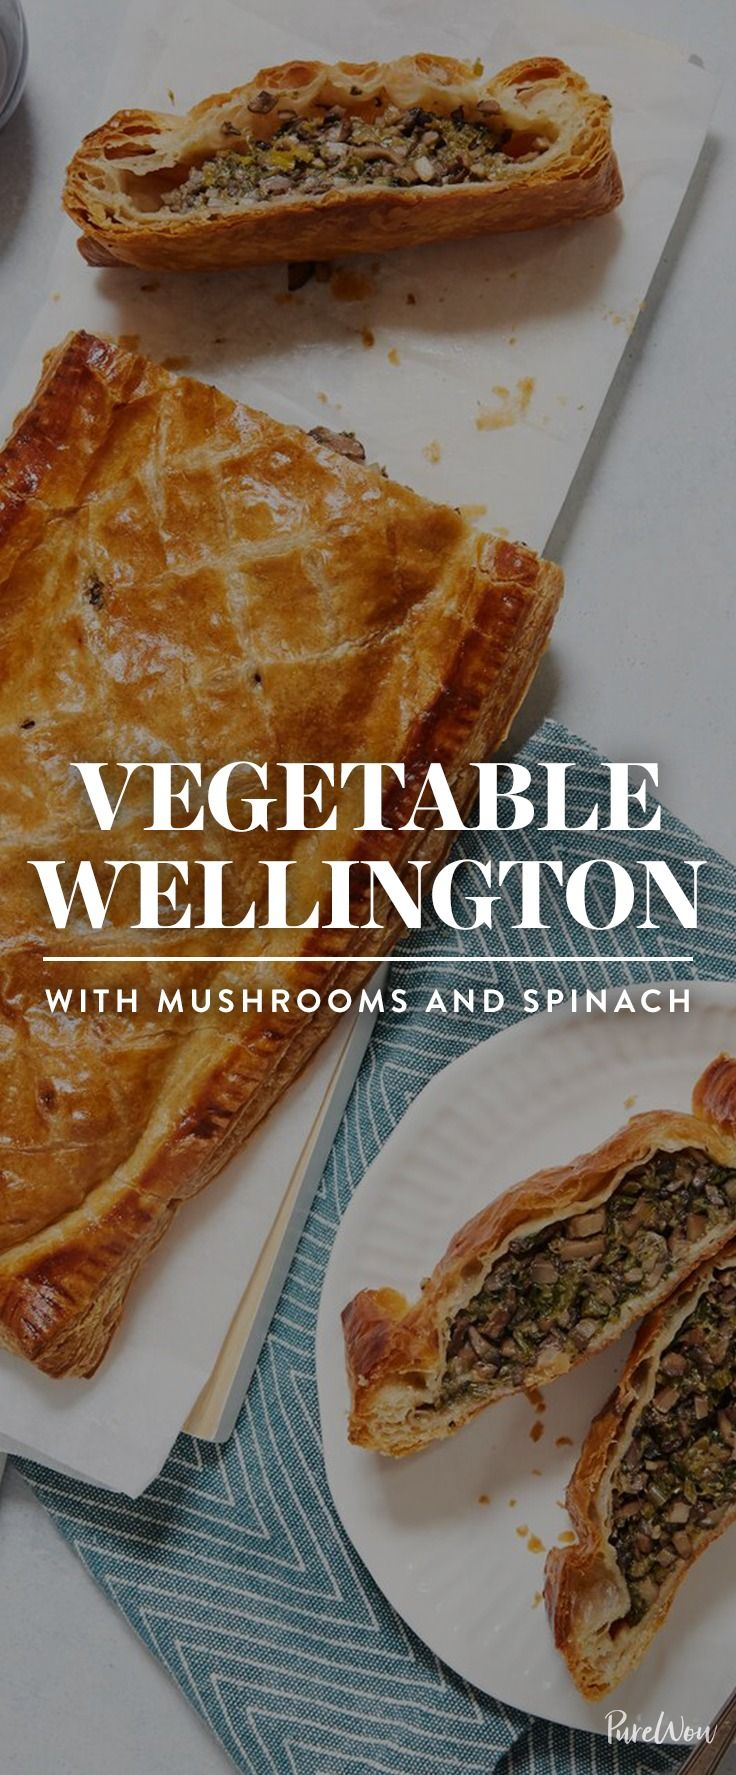 With the help of store-bought puff-pastry sheets, this twist on a comfort-food classic couldn't be easier to make. Get this vegetable wellington recipe here.